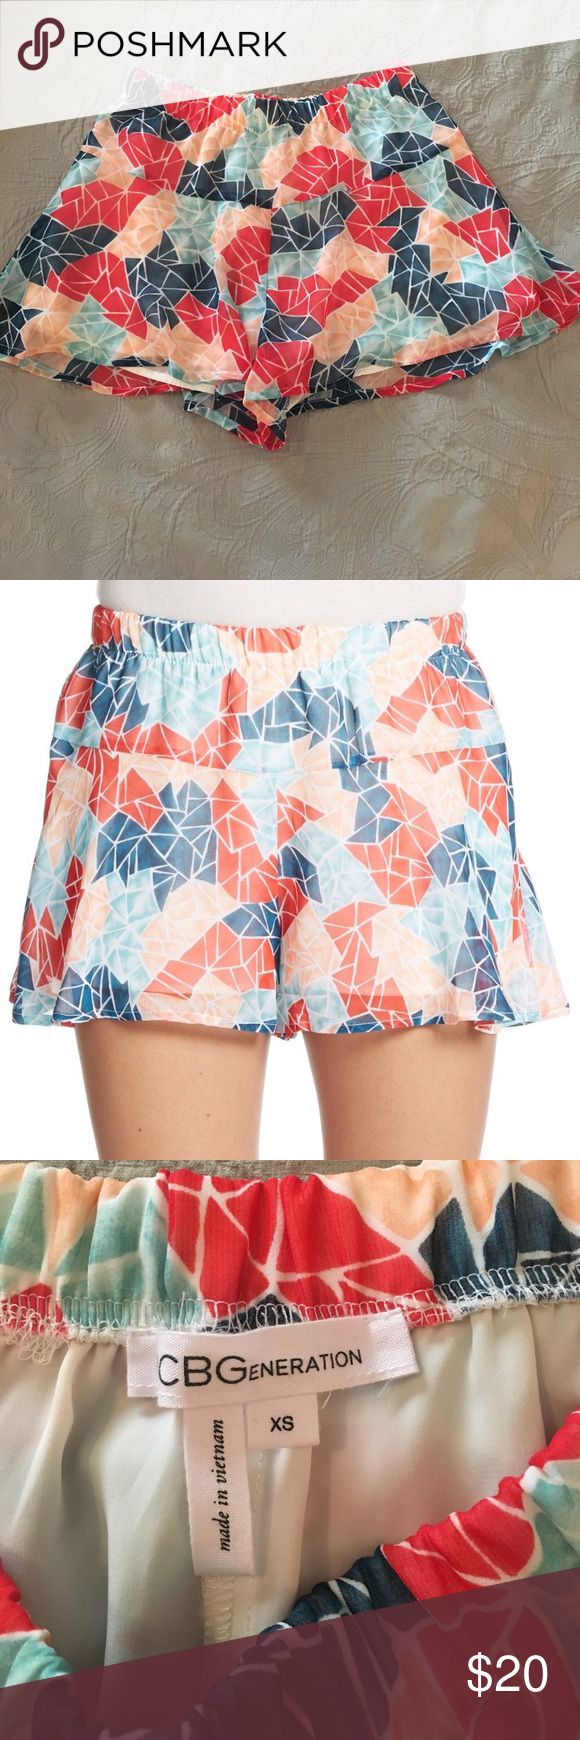 """BCBGeneration Geometric print shorts -IN PERFECT CONDITION!  -Elastic waistband  -Fully lined  -100% Polyester  -Machine wash cold  -2"""" inseam  -Approx. 11"""" in length  -Questions and REASONABLE offers are welcome  -Pet friendly home but smoke free -Bundle to save 💕 BCBGeneration Shorts"""